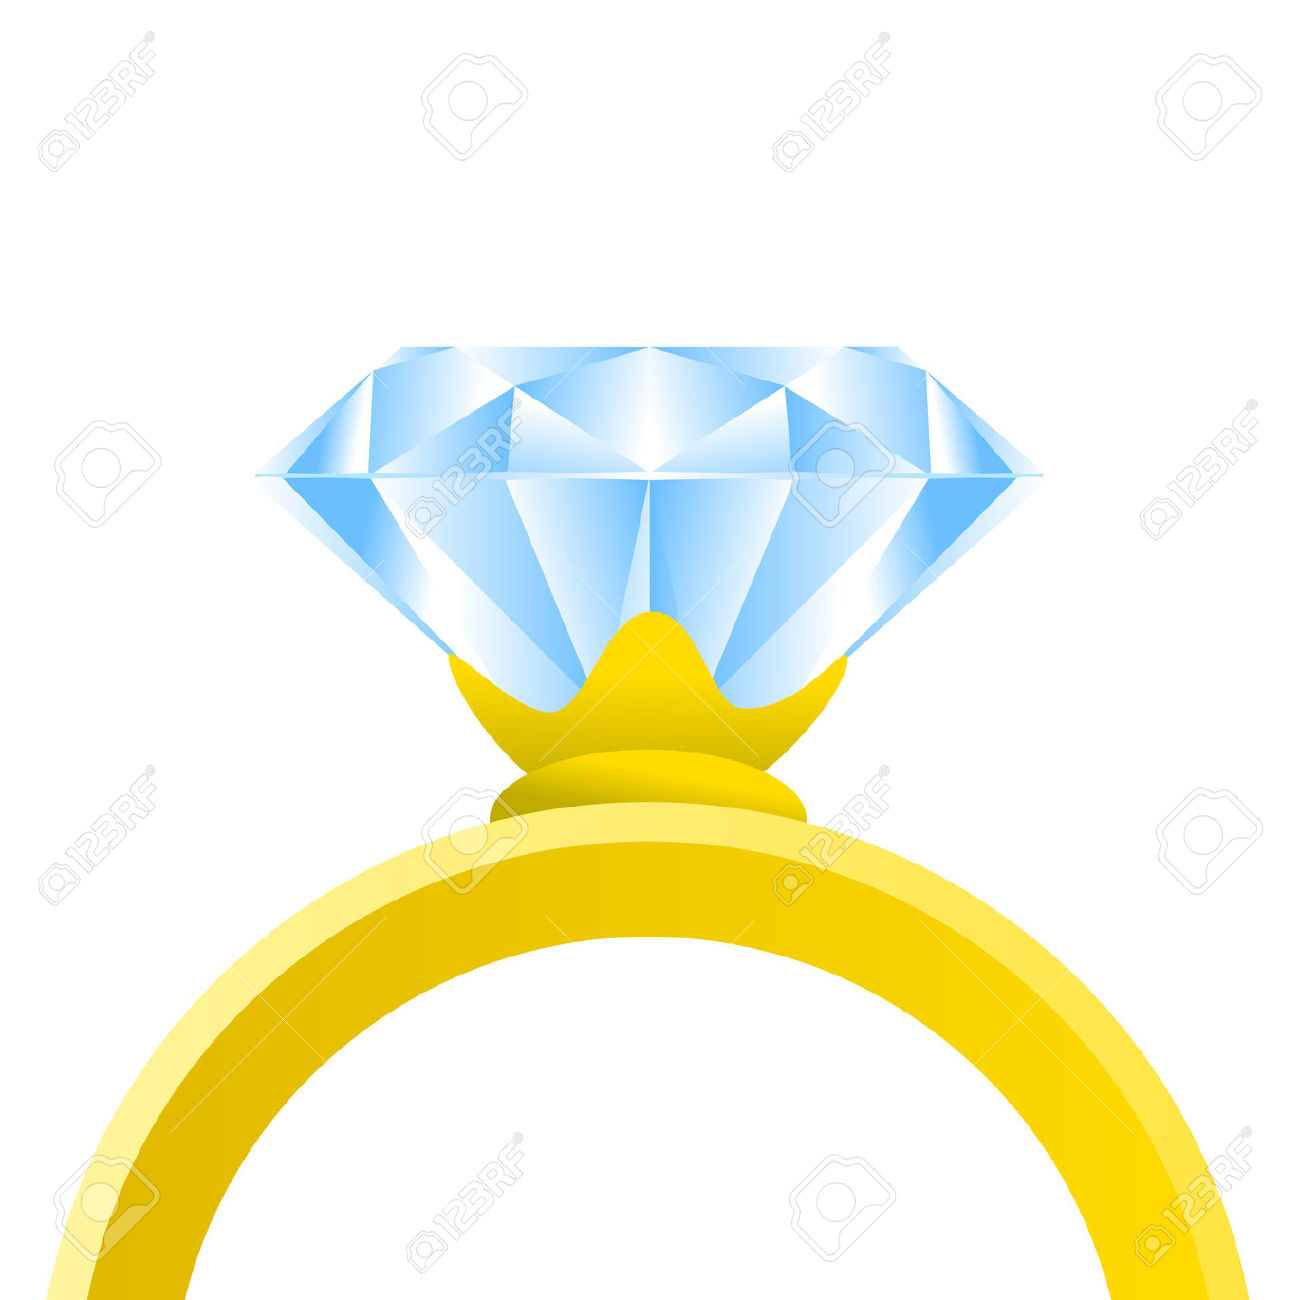 hight resolution of engagement ring clipart 2849